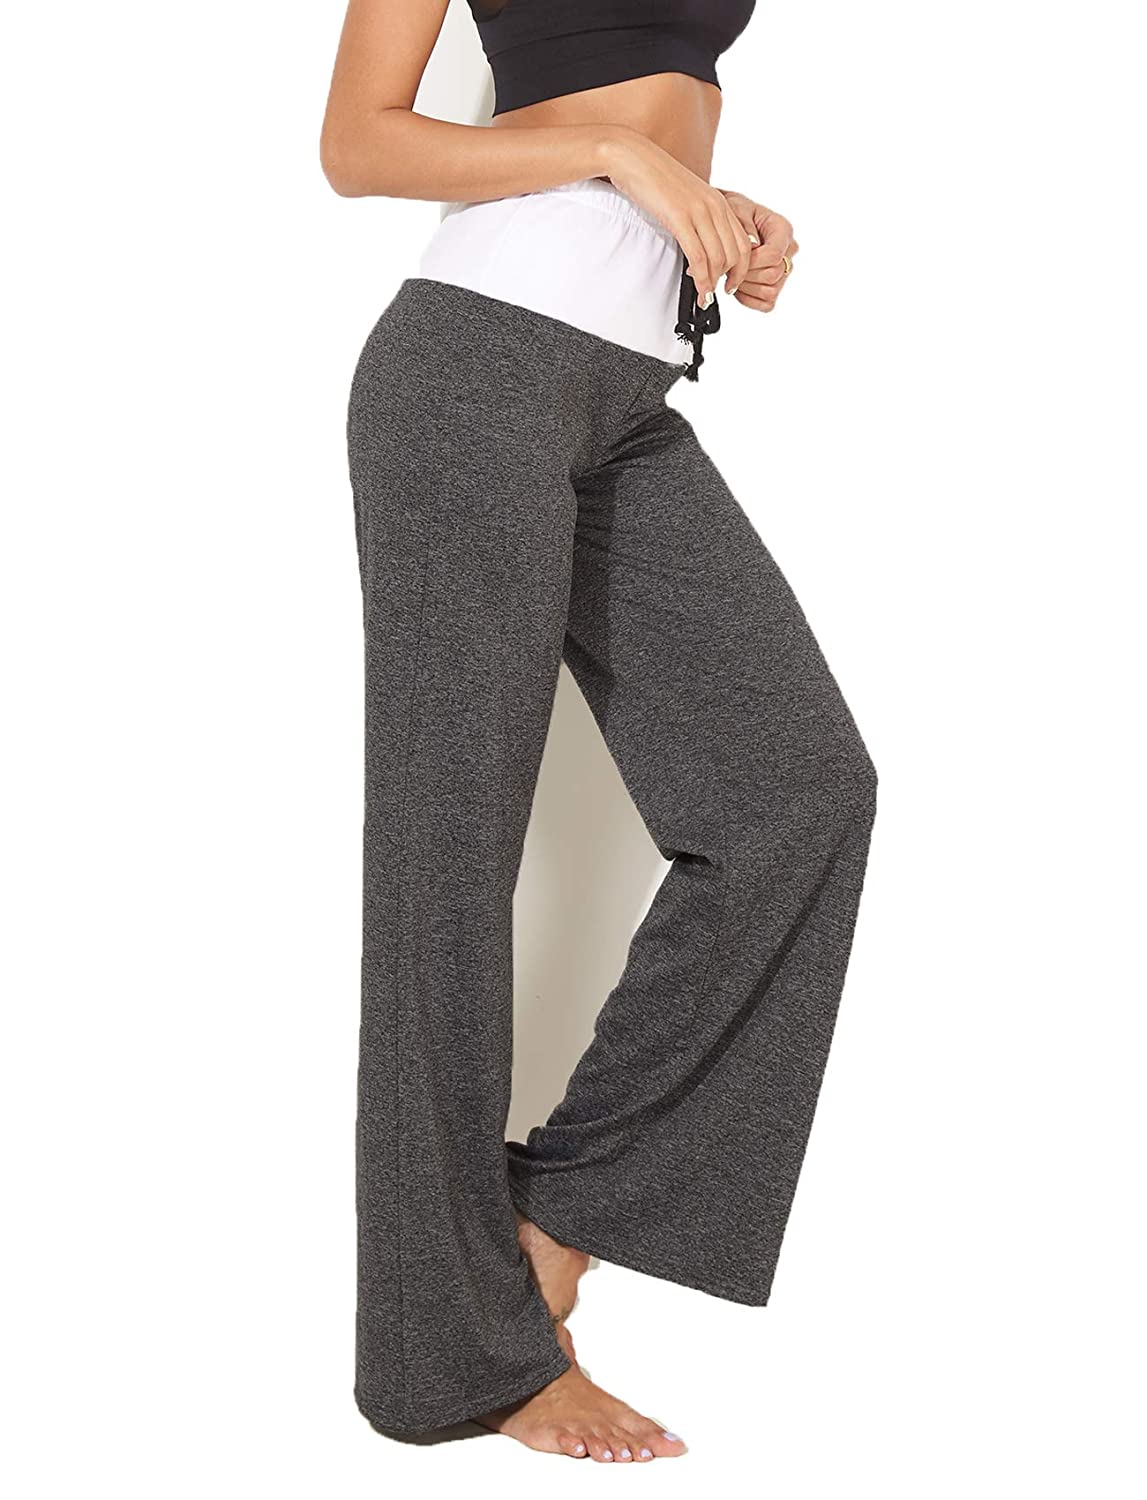 1 Black RIOJOY Women Wide Leg Yoga Trousers,Loose Casual Pajama Pants Fitness Leggings Comfy Baggy Workout Gym Palazzo Pants